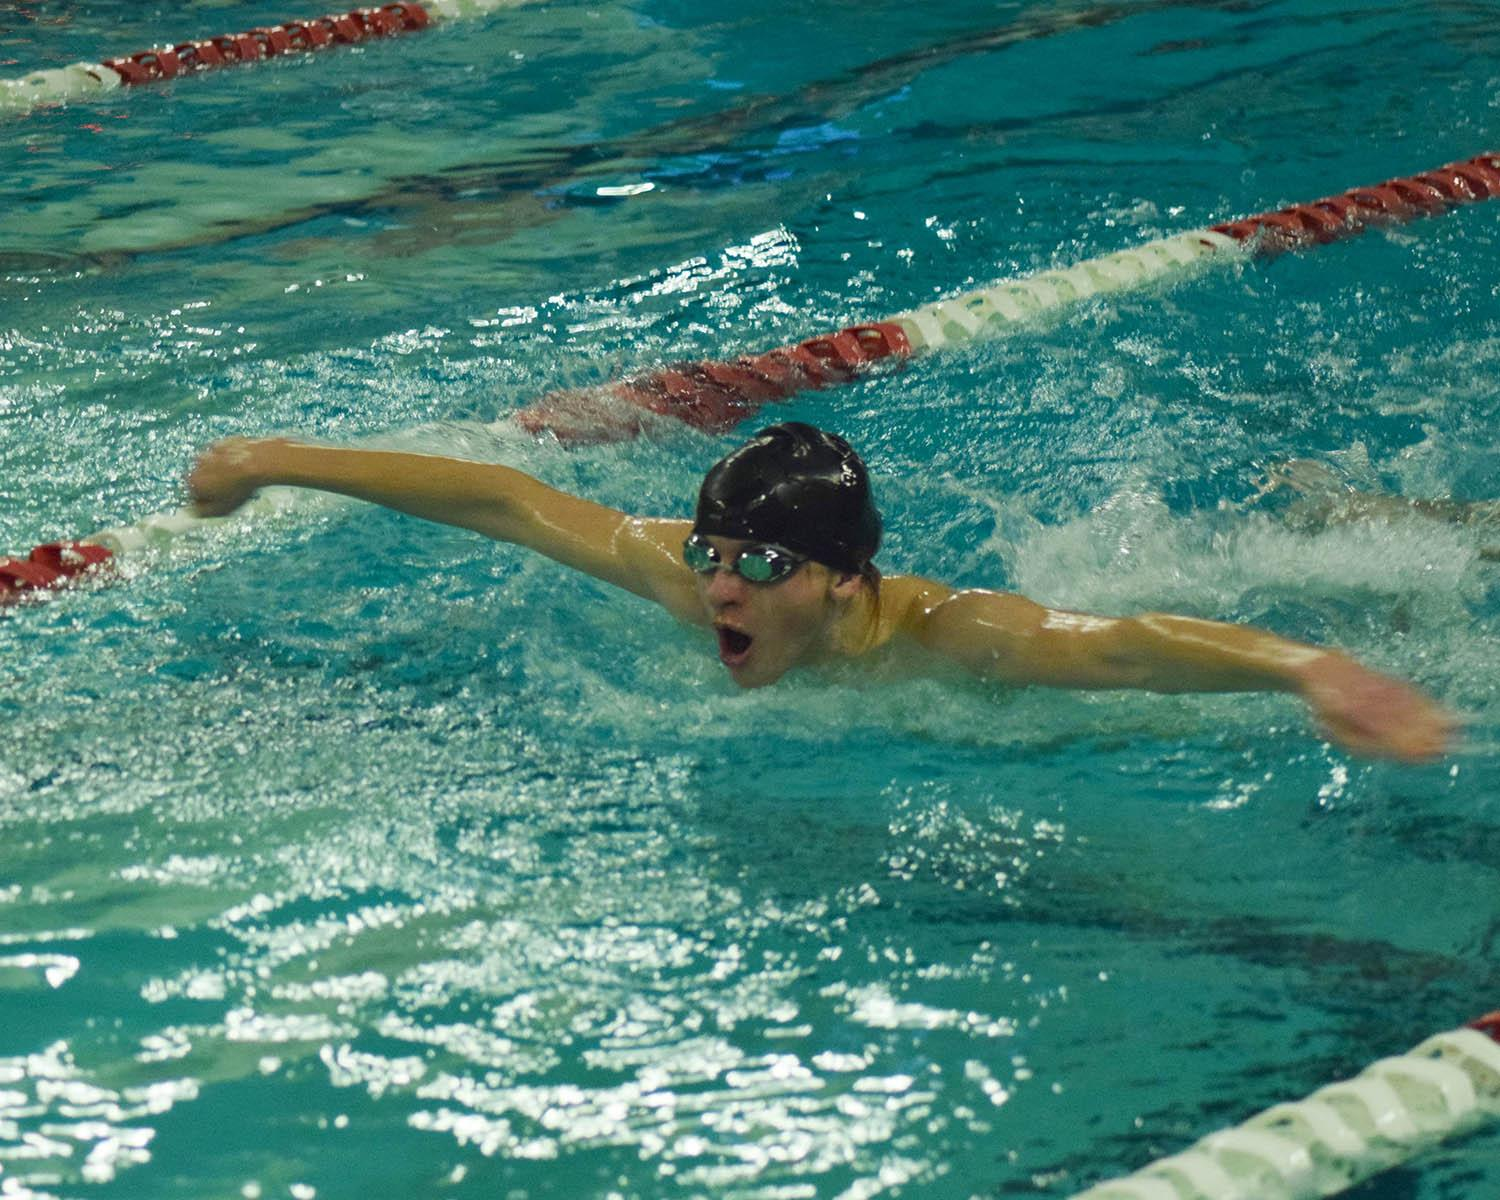 Sophomore Seth Edlund flies through the water in the 100 butterfly race at the Dec. 15 meet. His and the team's effort combined resulted in a 97-64 win against Woodinville High School.